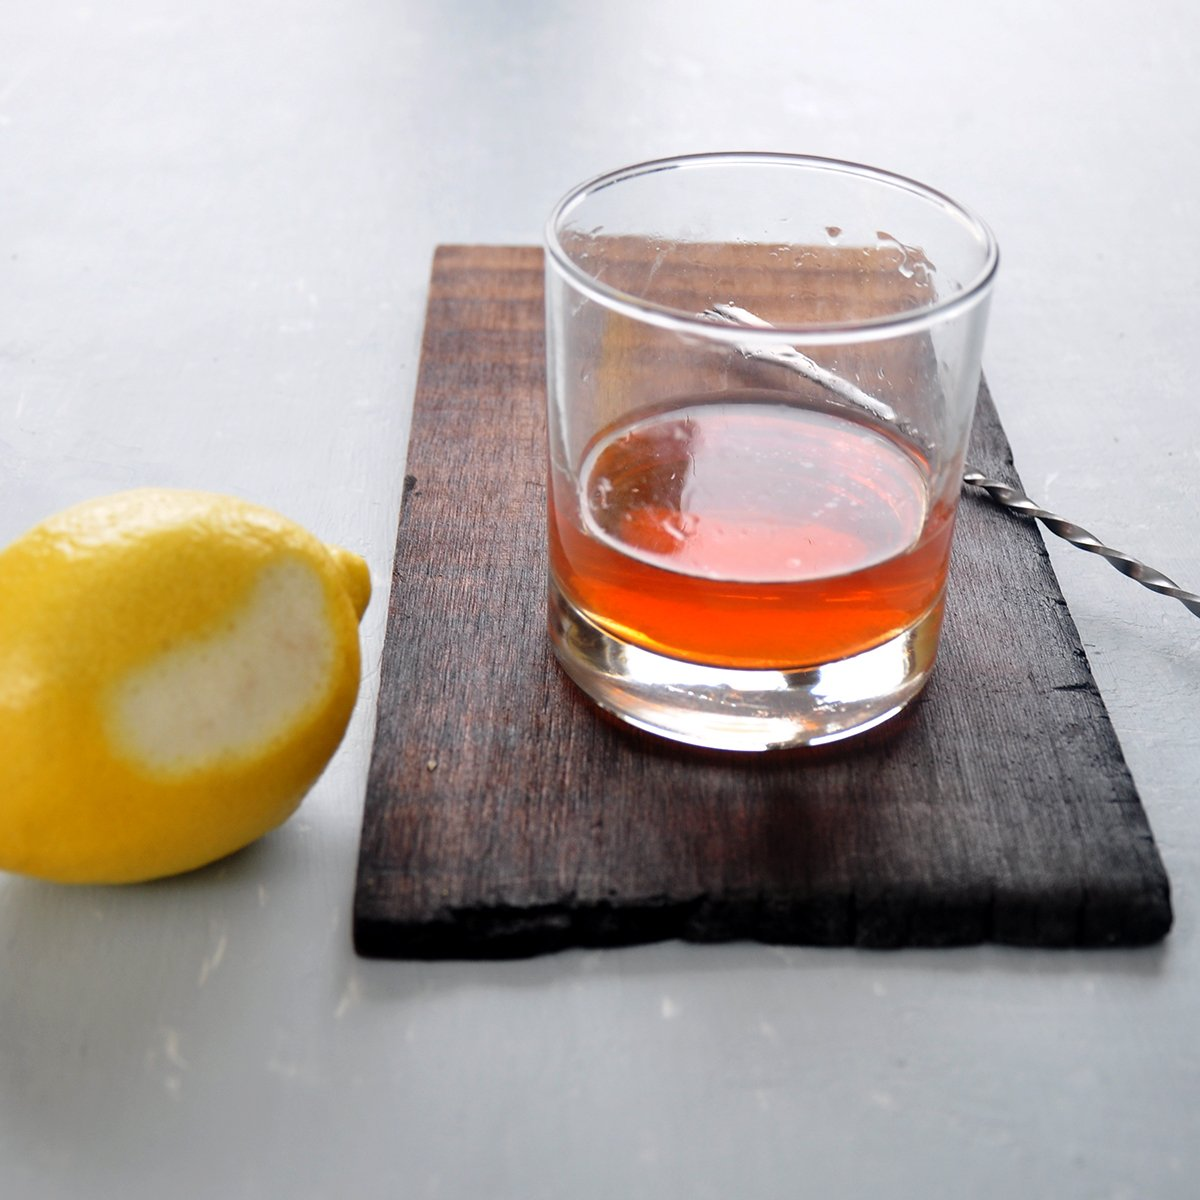 Sazerac on wood plank with lemon and mixing spoon